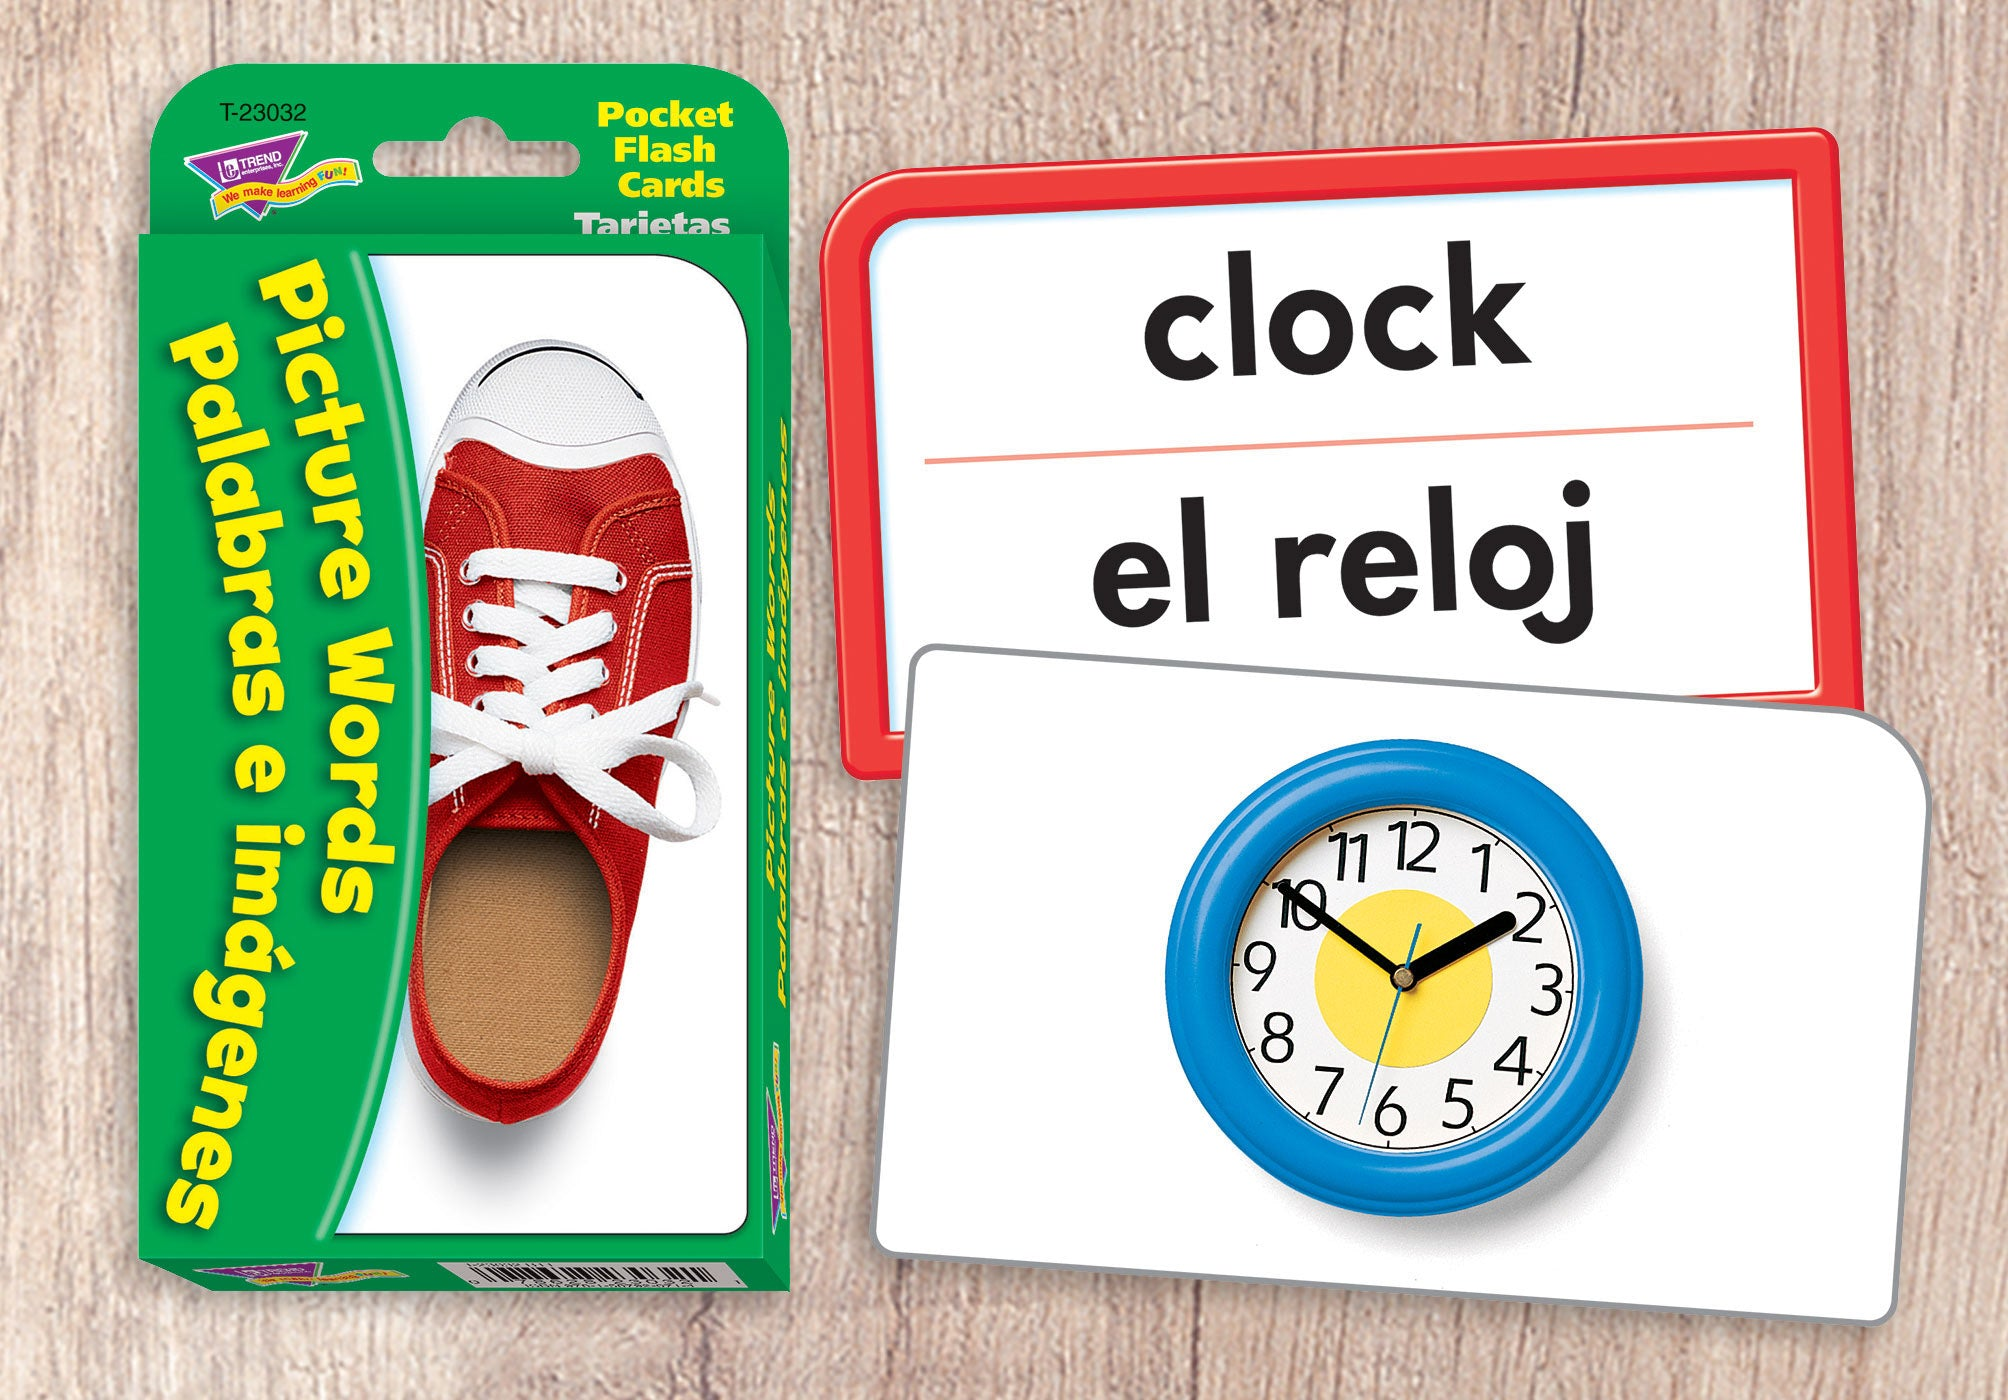 Picture Words/Palabras e imágenes (English/Spanish) Pocket Flash Cards made in USA